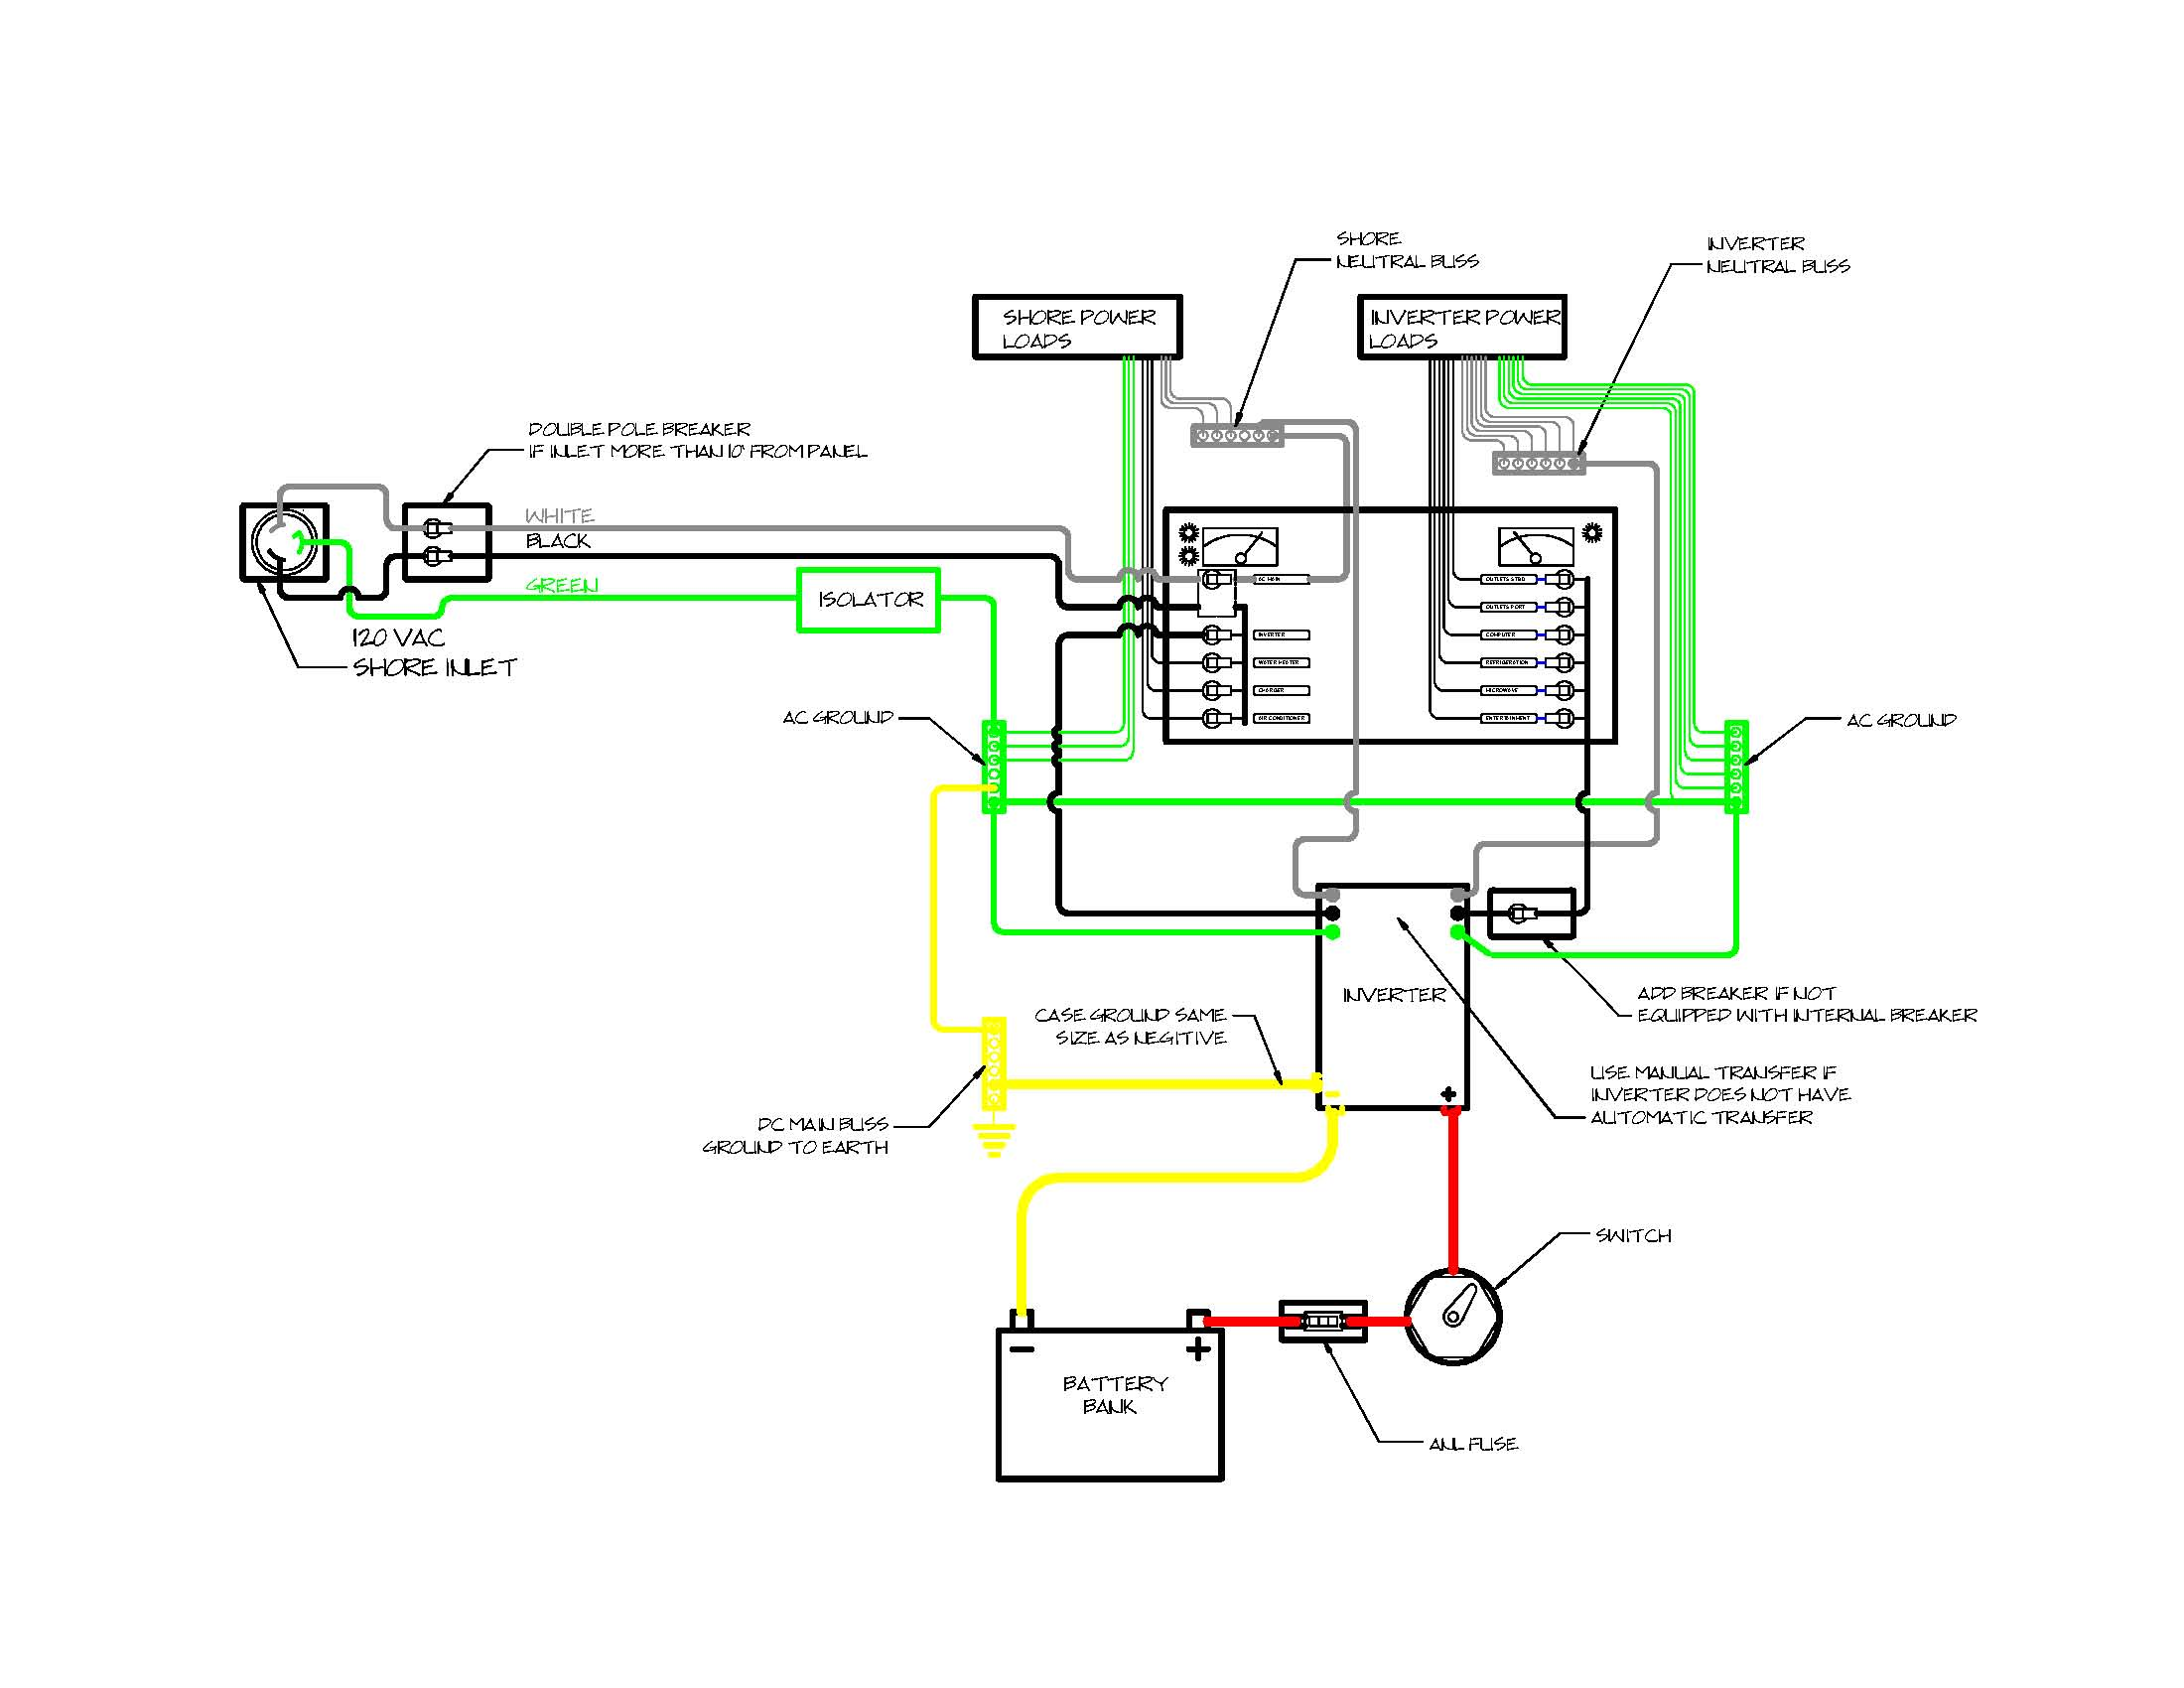 Inverter wiring simplejpg understanding inverter installations project boat zen power inverter remote switch wiring diagram at reclaimingppi.co